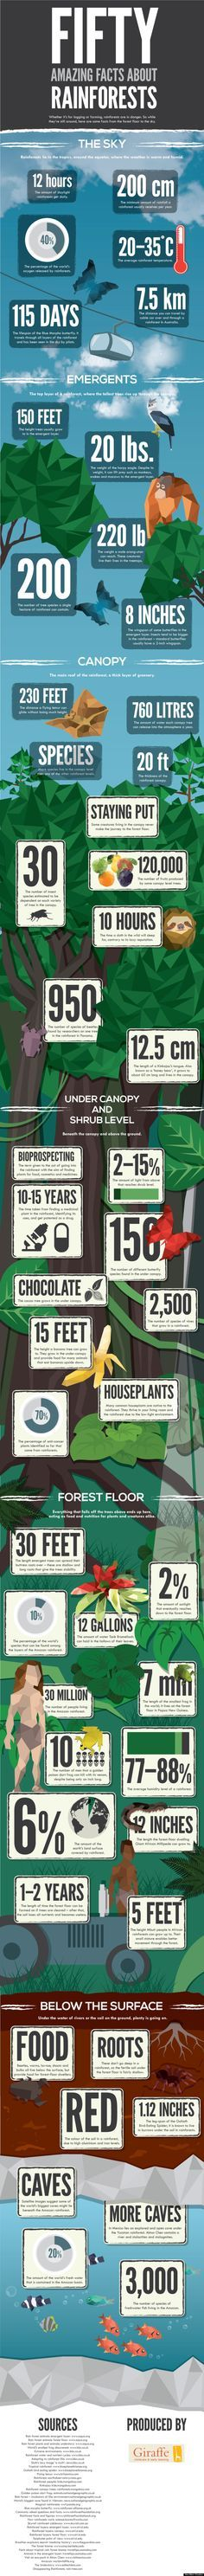 """According to the National Geographic, rainforests could vanish from the planet completely within the next century if current deforestation rates continue.""""   Here's a really cool infographic that illustrates the many, many reasons why we can't let that happen:"""